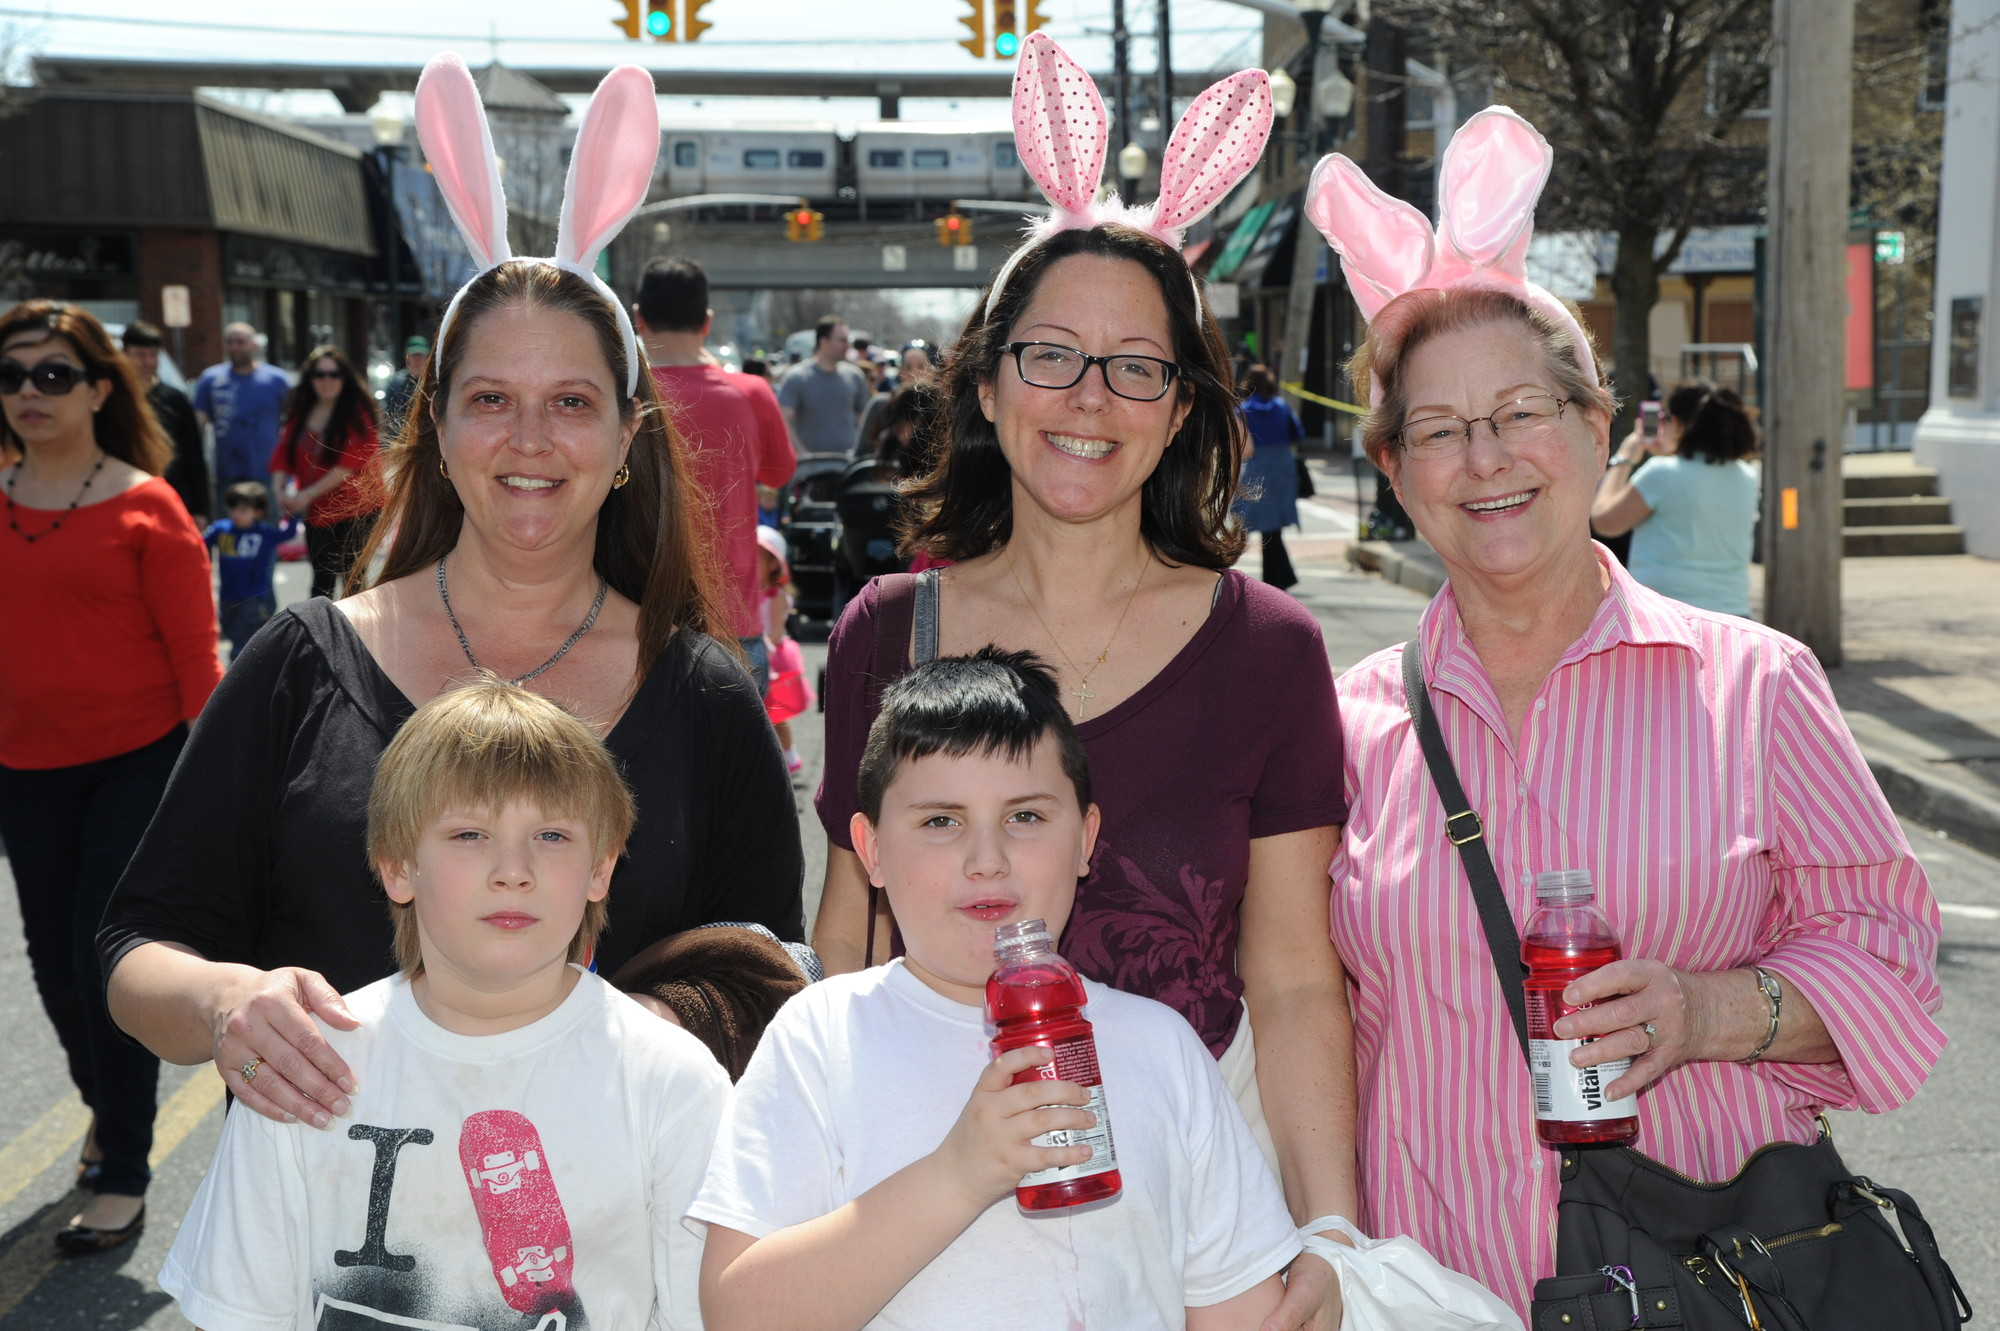 Cathryn and Tyler Casesi, left, Mary and Charlie Leschinski and Jessica Gregorio were dressed for last Saturday's occasion ­— the annual Easter Parade, sponsored by the Chamber of Commerce of the Bellmores.